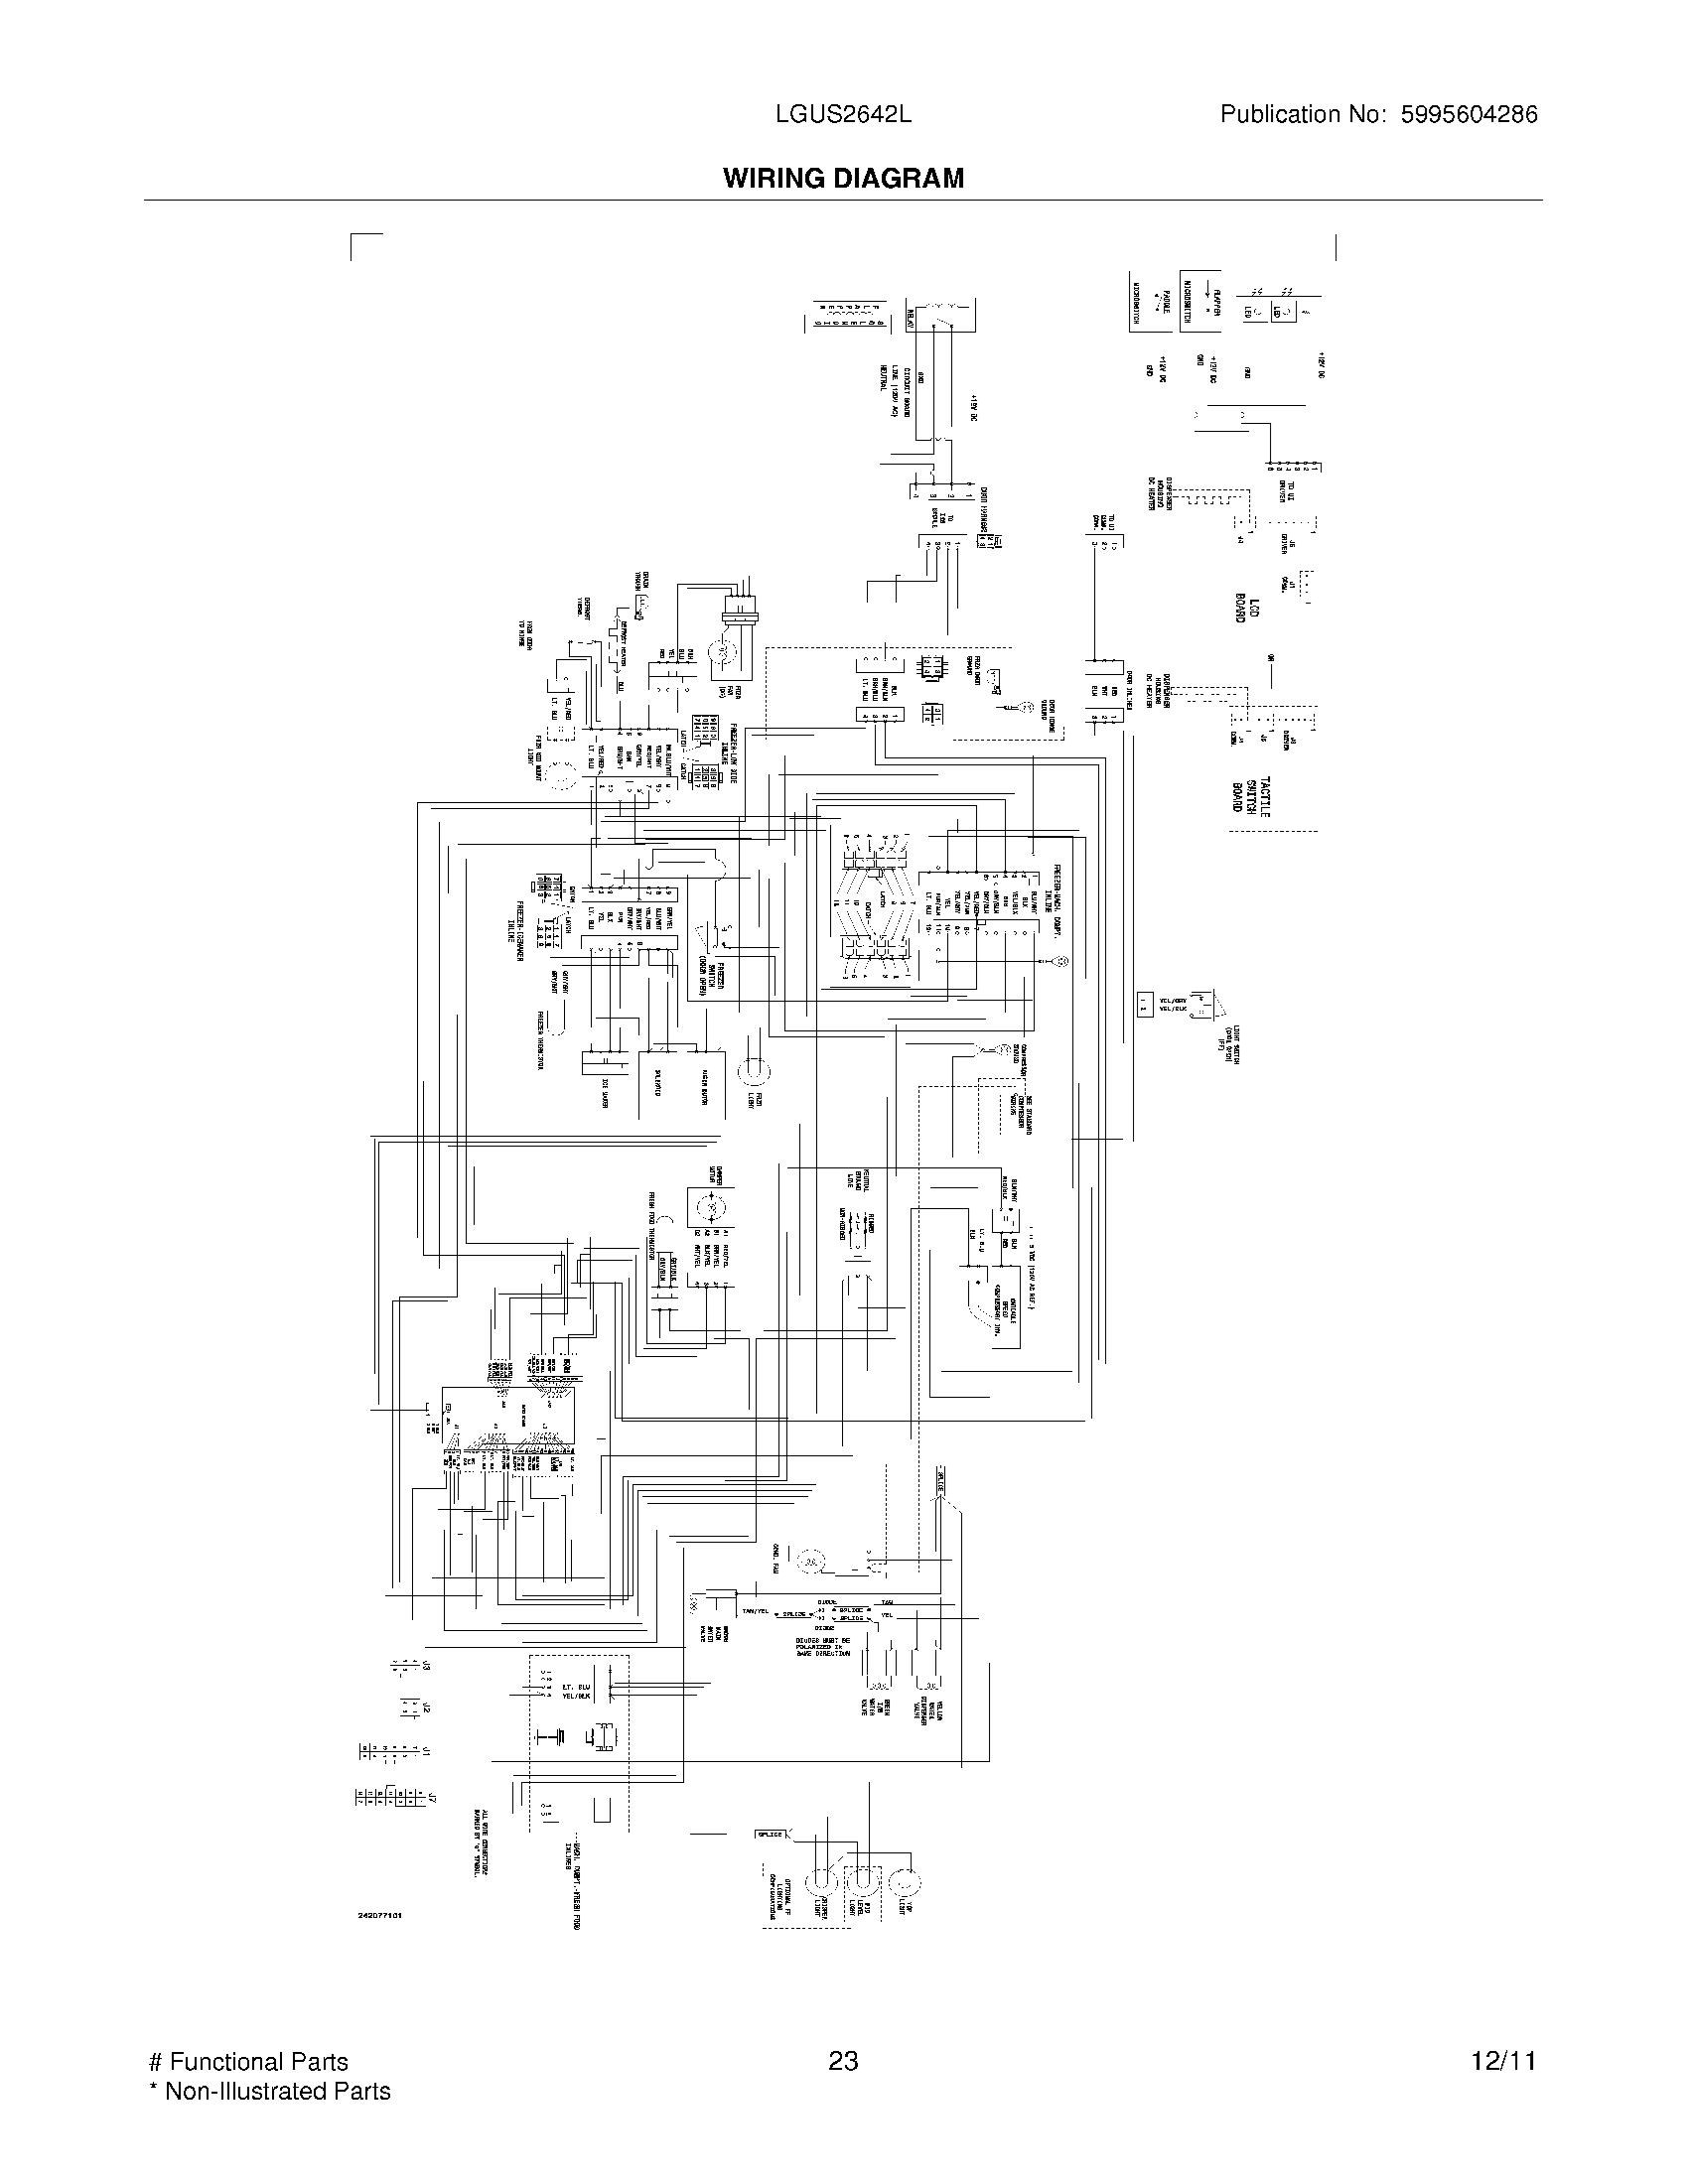 Phase Motor Wiring Diagram Furthermore Gfci Outlet GFCI